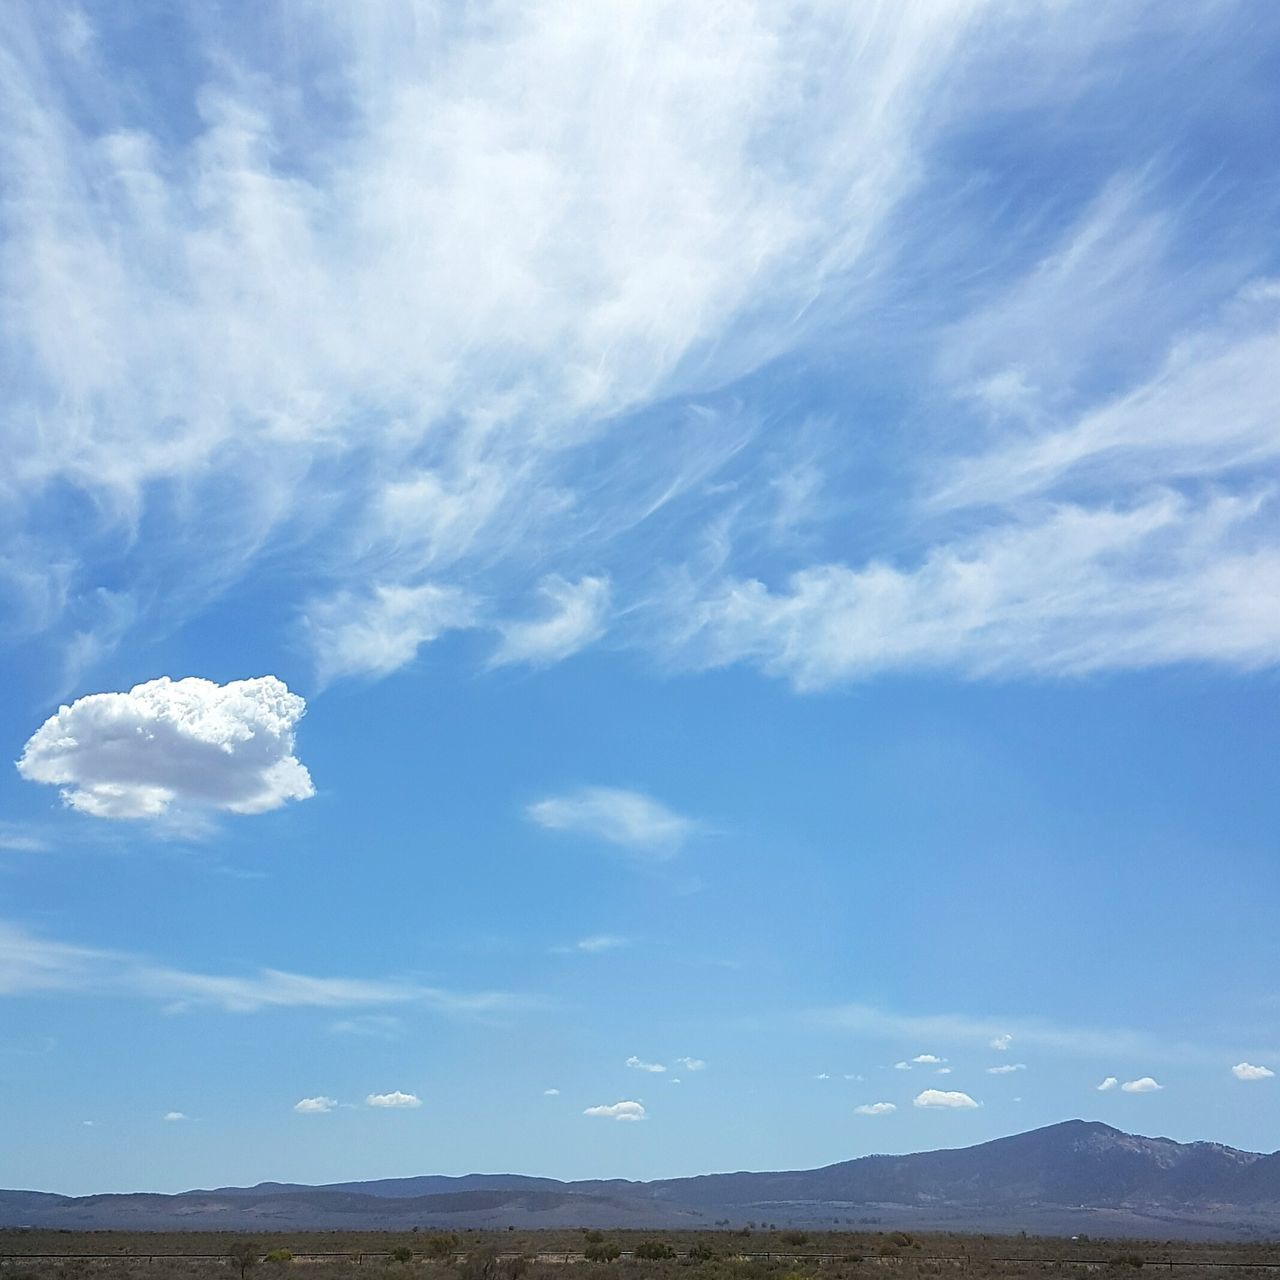 sky, cloud - sky, nature, tranquility, beauty in nature, scenics, tranquil scene, day, no people, outdoors, blue, landscape